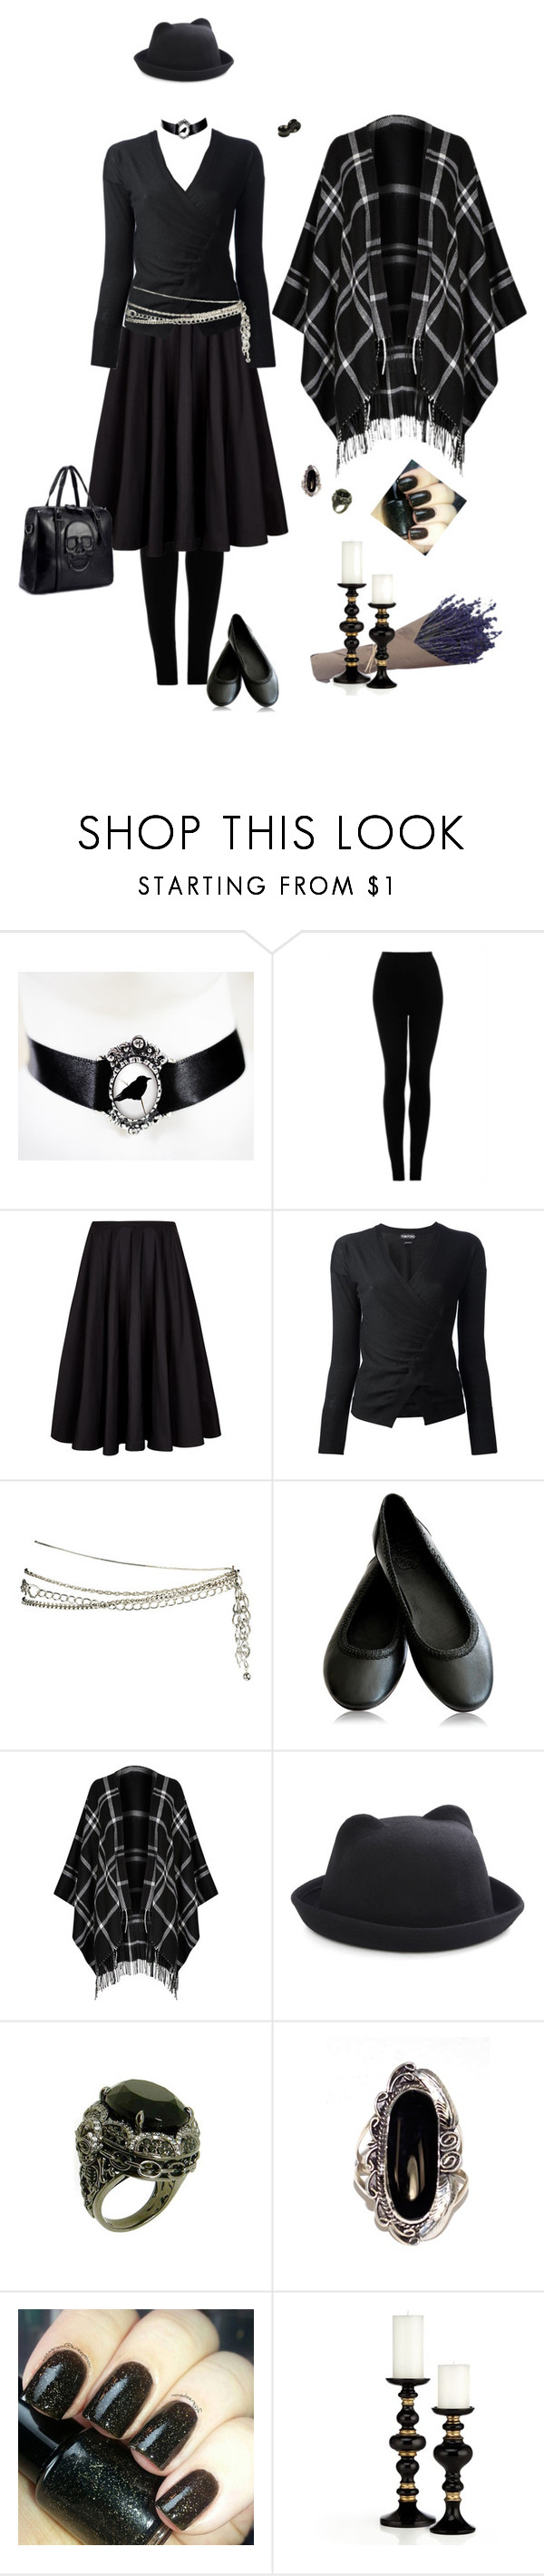 """Untitled #159"" by kat-knowles ❤ liked on Polyvore featuring Topshop, Ted Baker, Tom Ford, Forever 21, M&S, Natalie B, Magic Woman and Emerson"